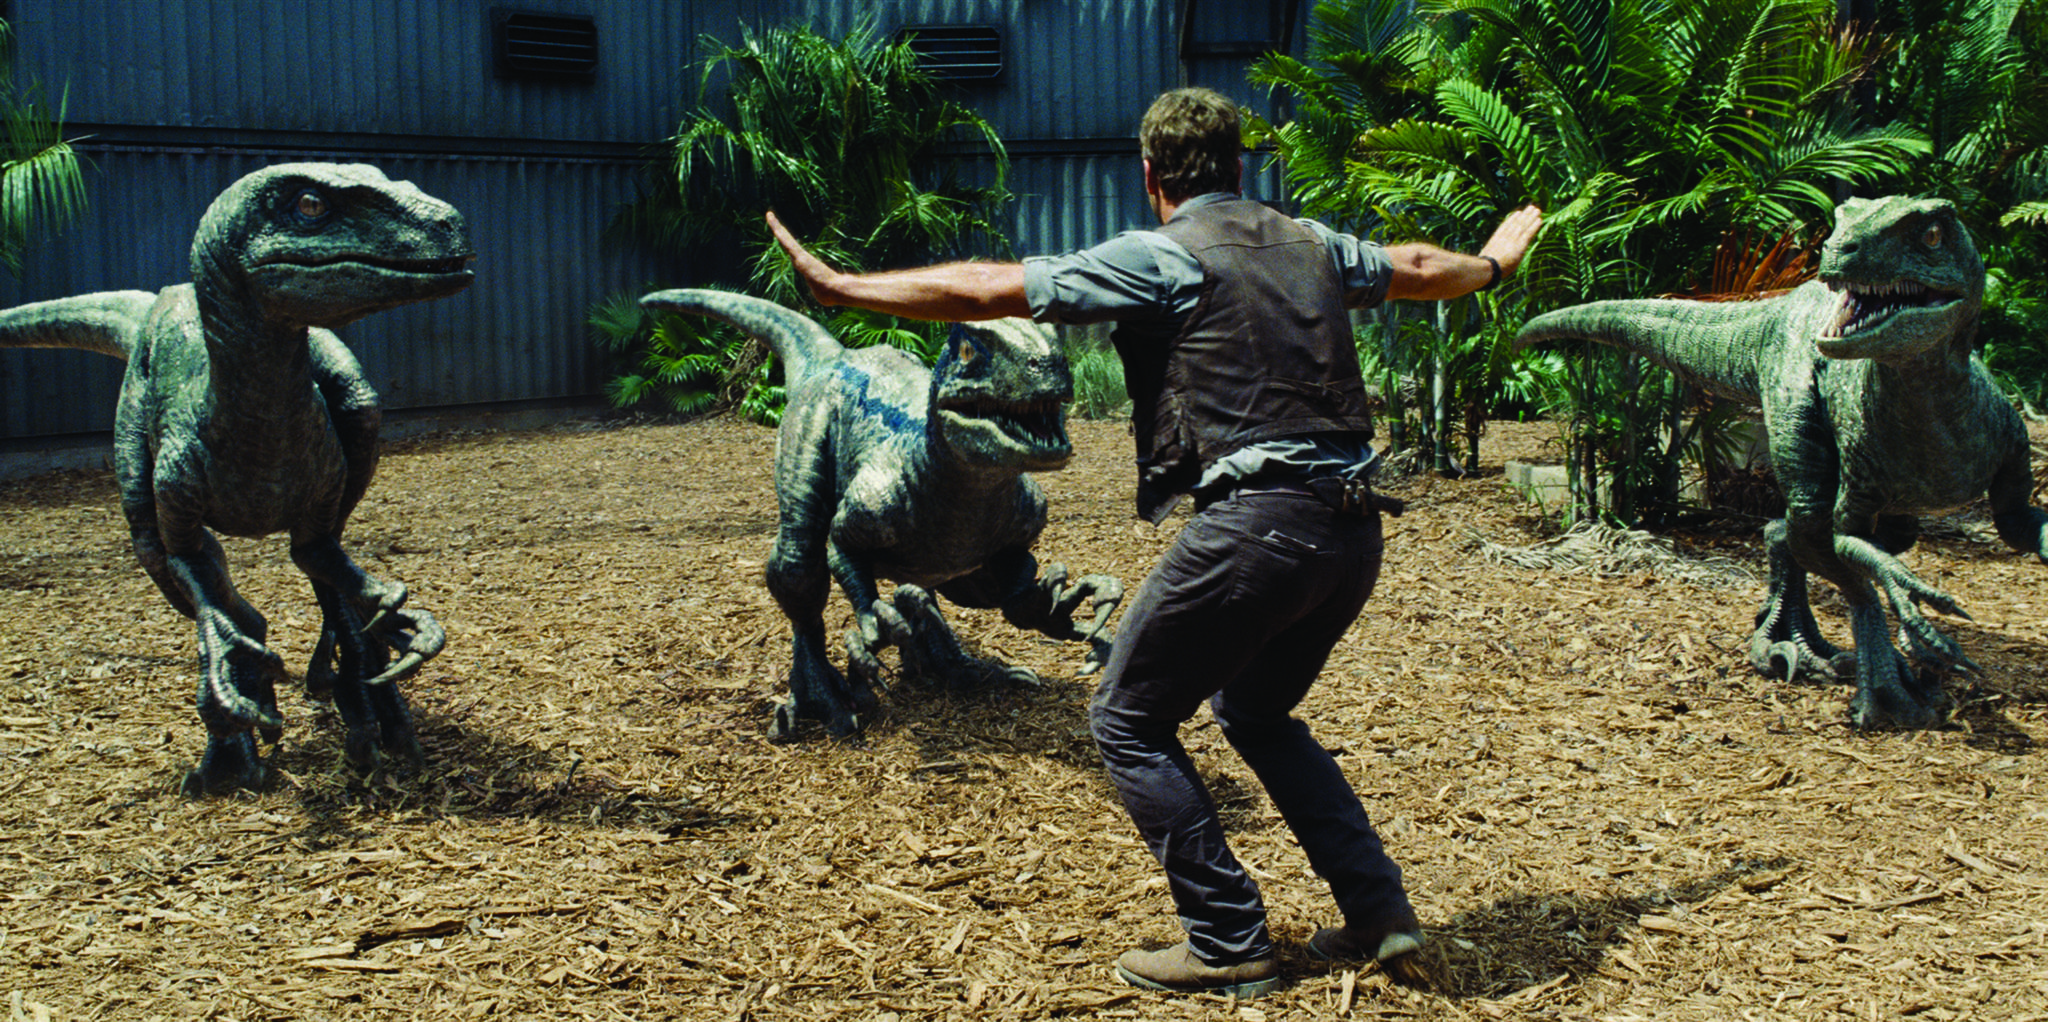 Chris Pratt in Jurassic World proves that three sequels and reboots are better than one.